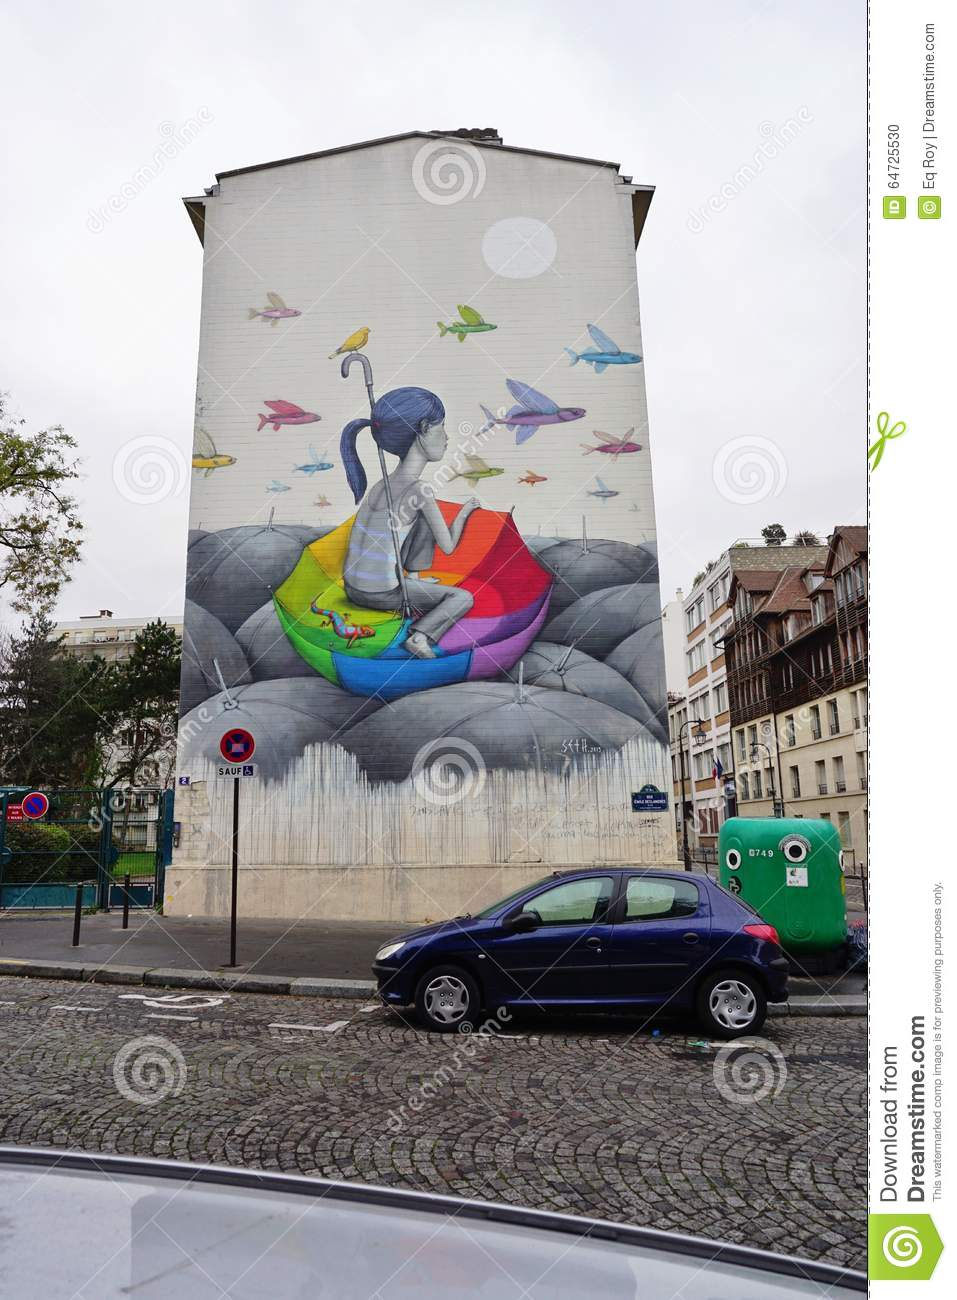 Wall Mural Painting By Famous French Street Artist Seth Globepainter